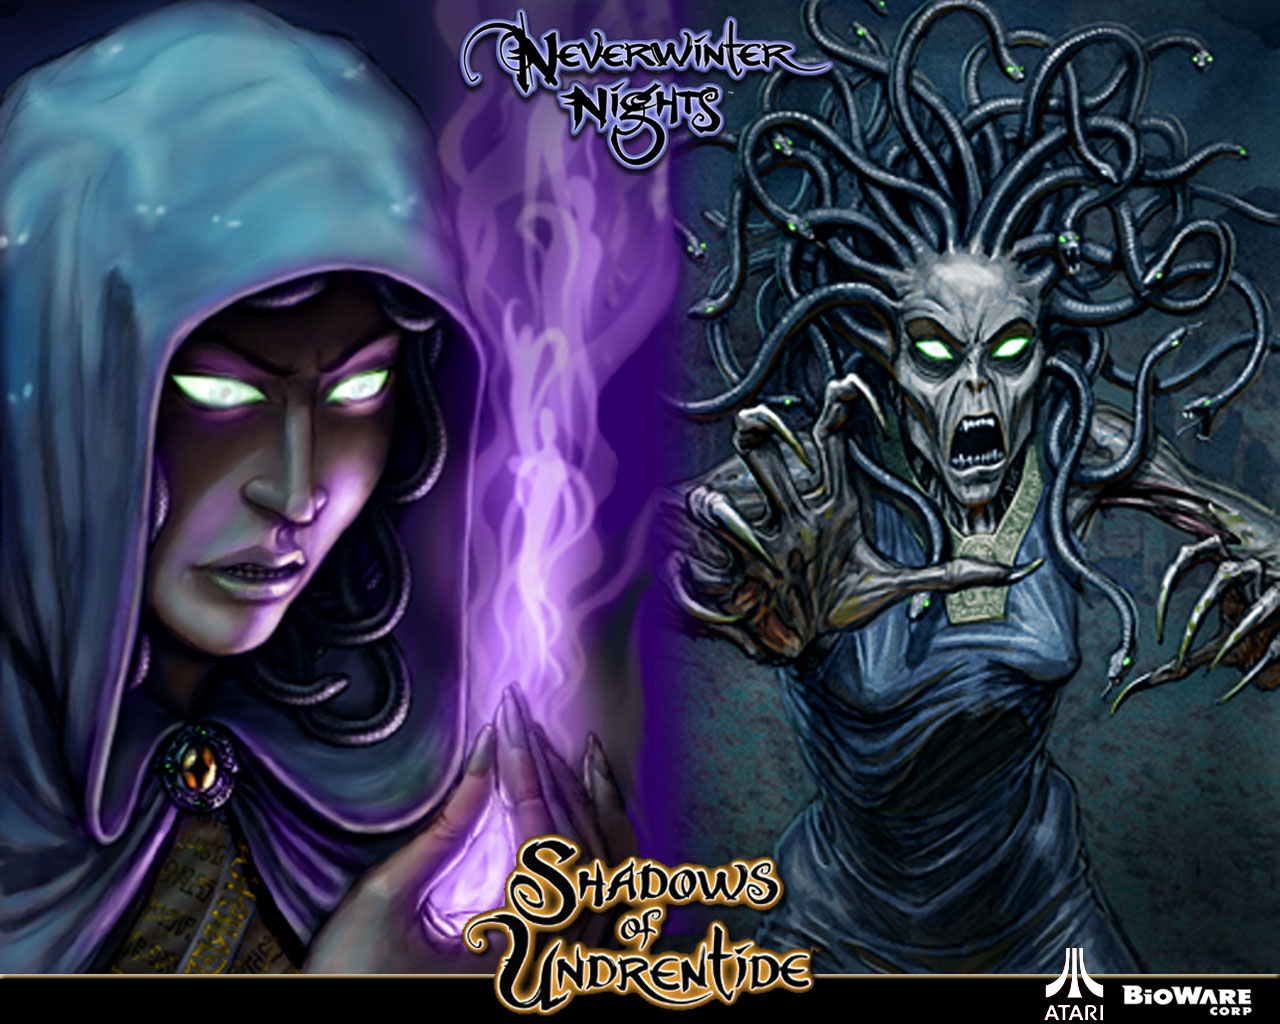 Арт к игре Neverwinter Nights: Shadows of Undrentide